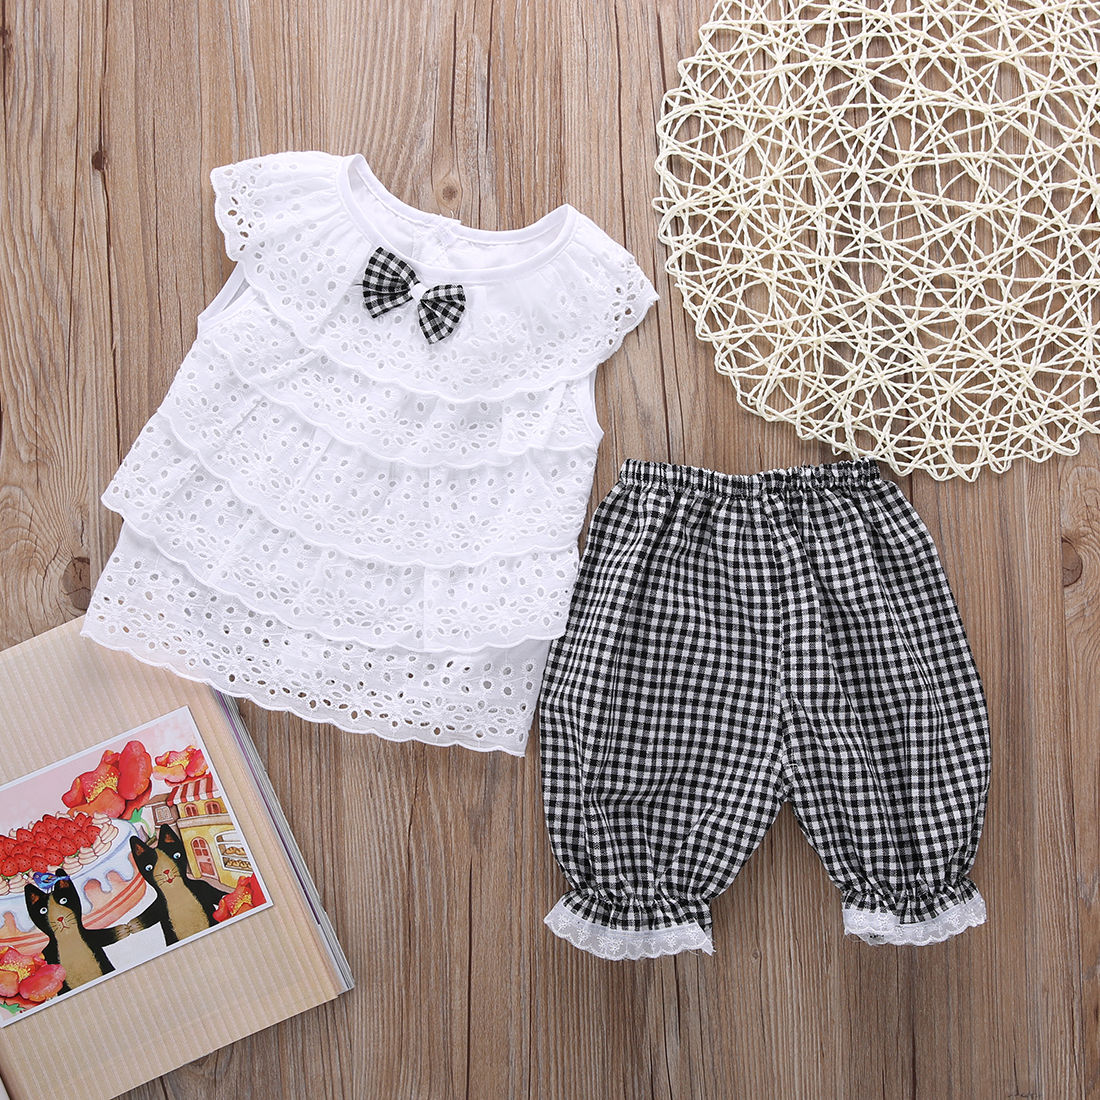 58194931ed090 US $3.35 10% OFF|2PCS Toddler Kids Baby Girls Outfit Clothes Cute Lace  Plaid Sets Sleeveless shirt Tops+ short Pants Trousers Hot Sale-in Clothing  ...